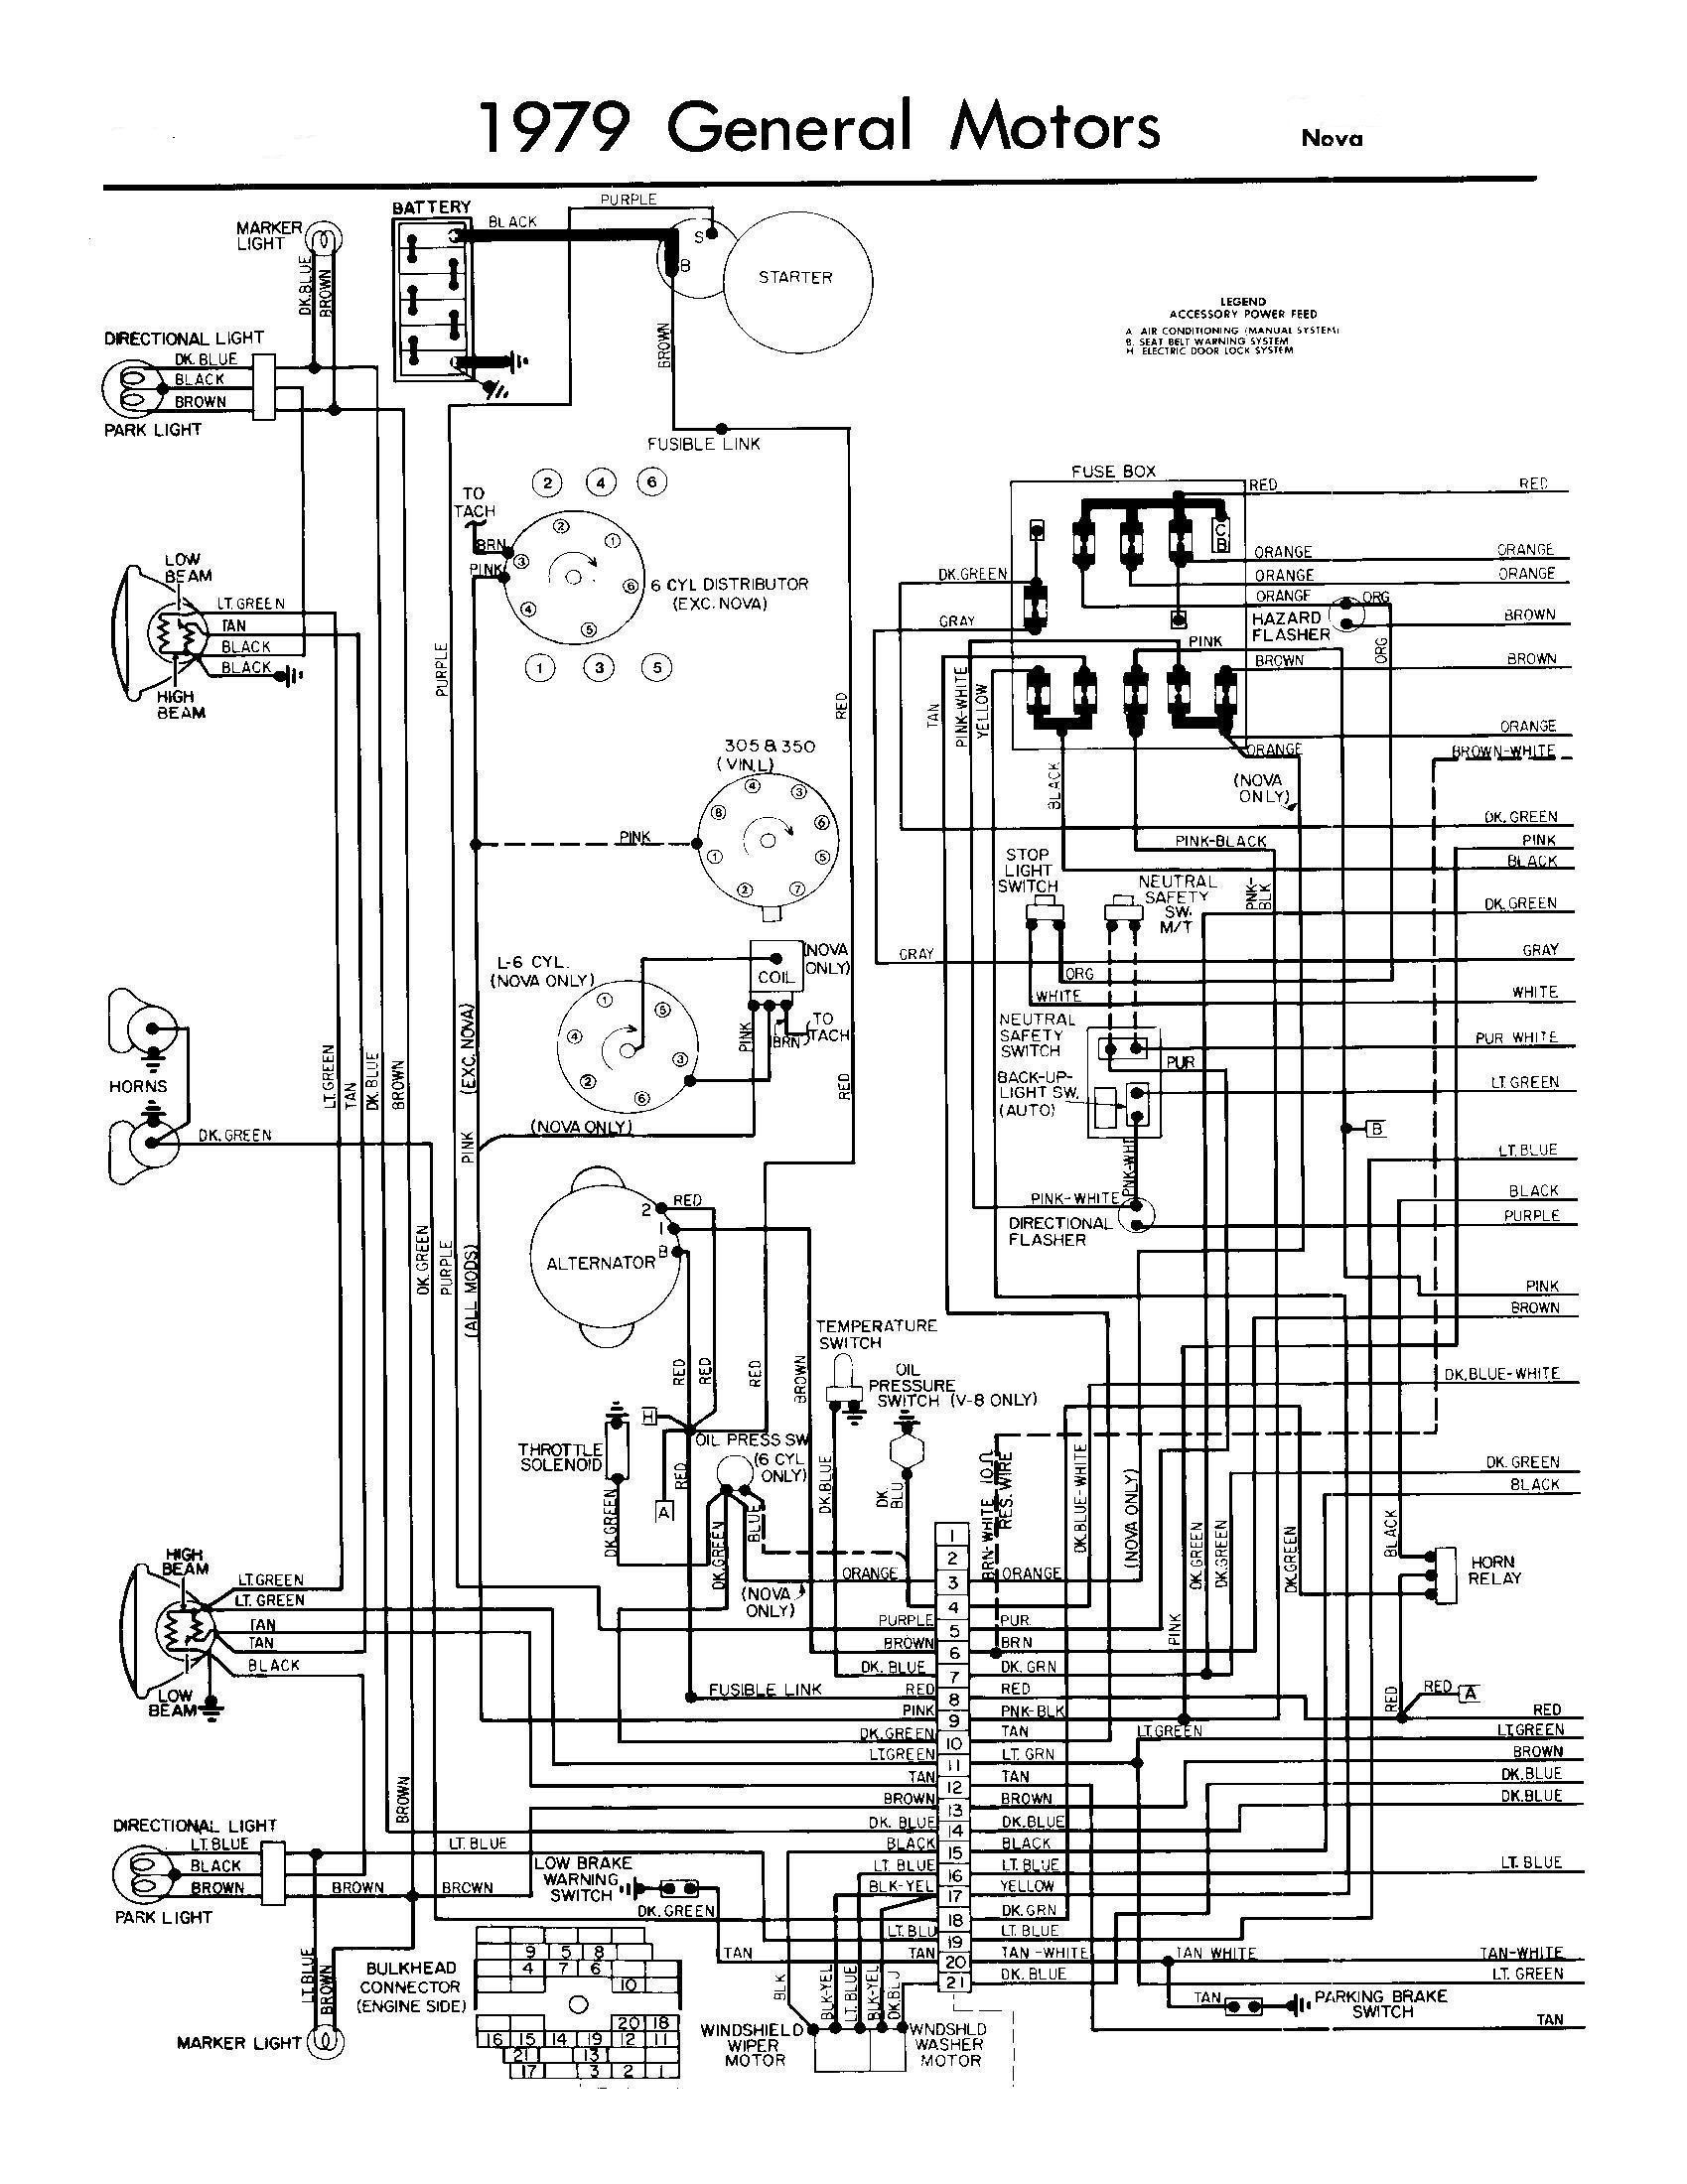 1976 el camino wiring diagram schematics wiring diagrams u2022 rh seniorlivinguniversity co 1966 el camino fuse box diagram 1966 Chevy Impala Wiring Diagram